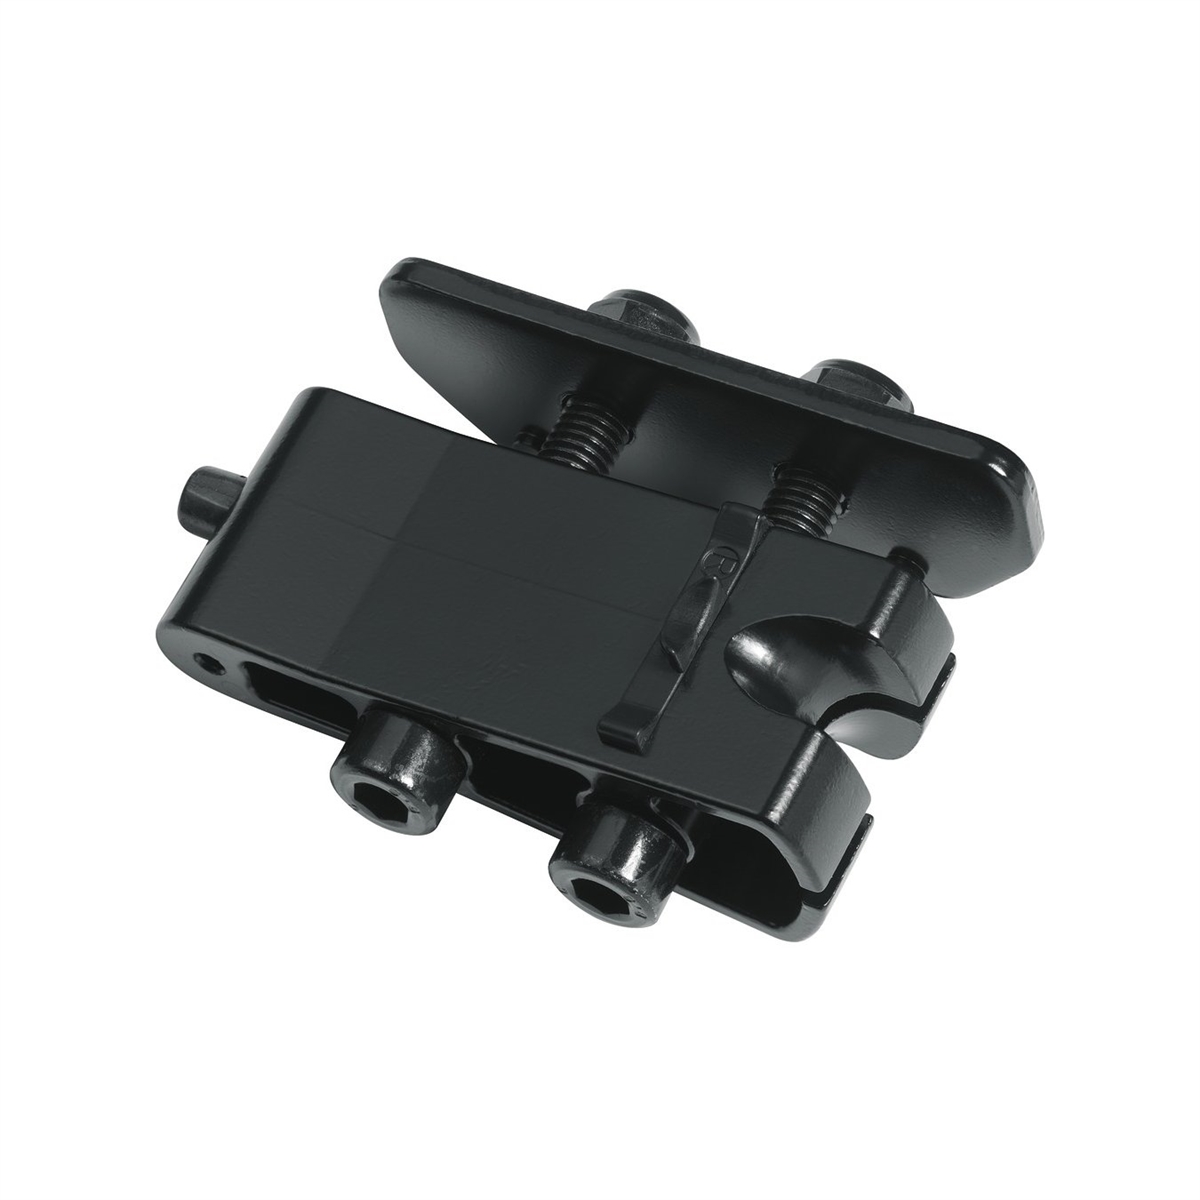 Support for 37/60HB70 disc lock